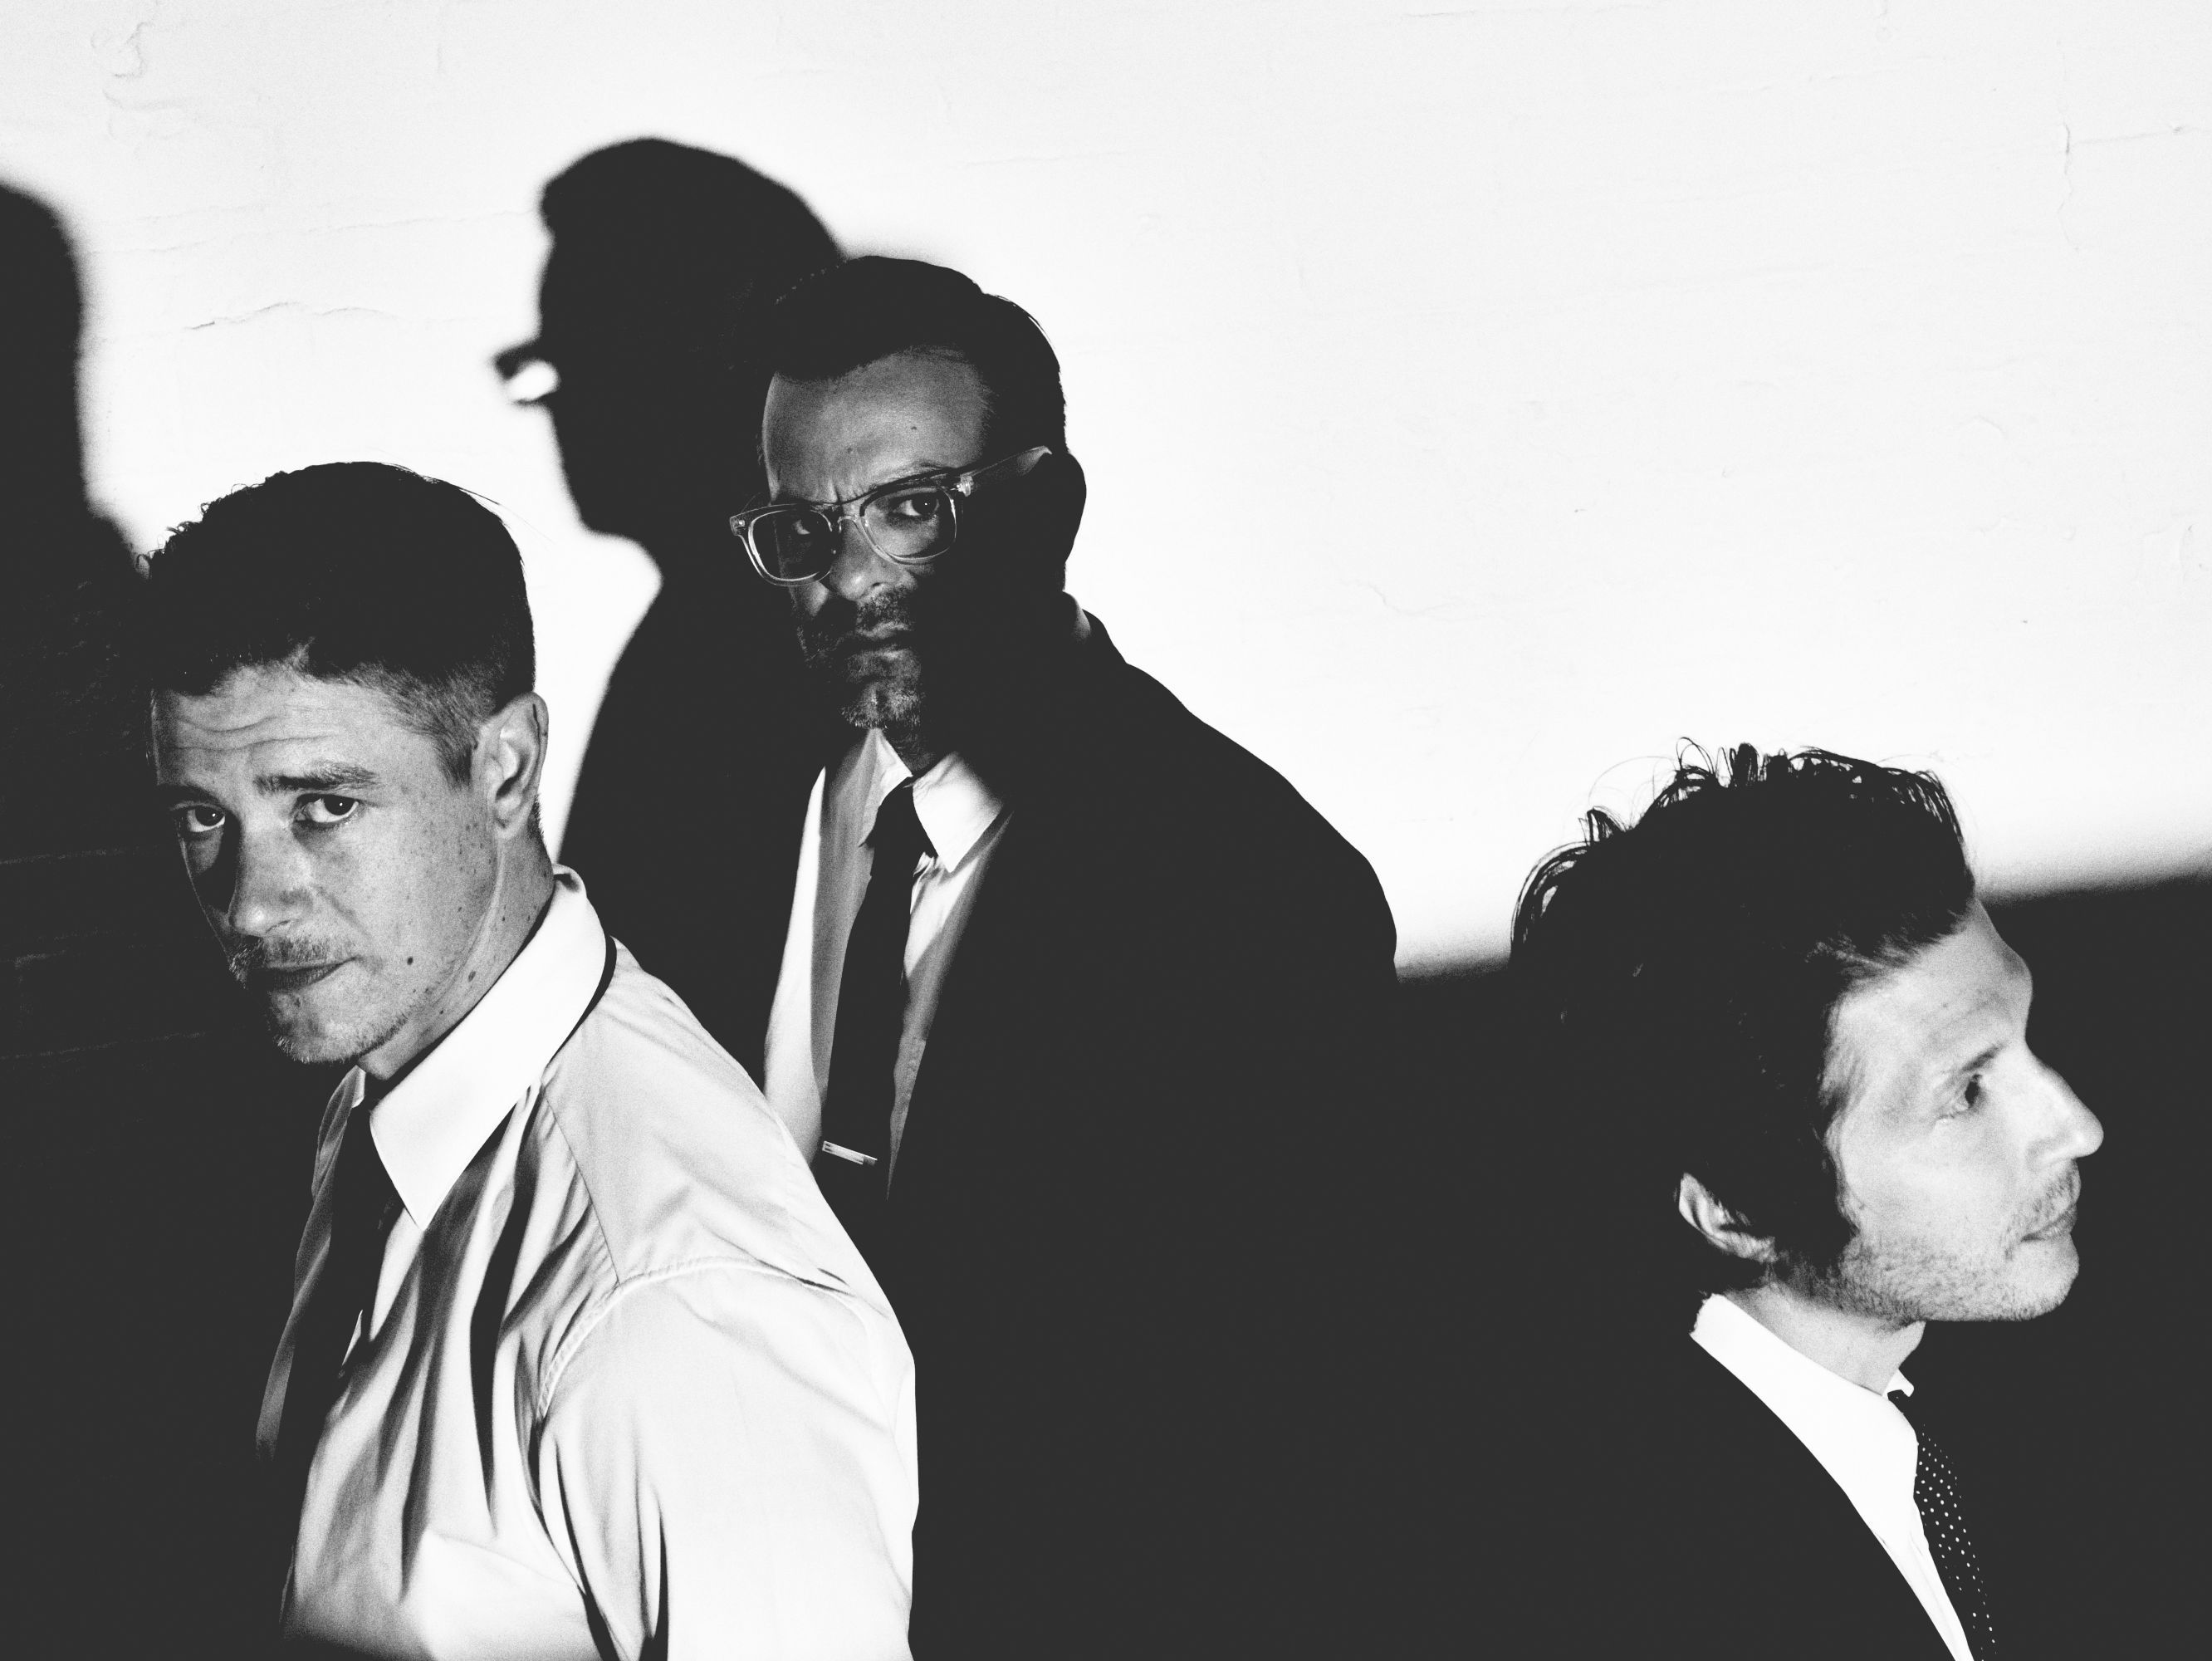 Interpol celebra los 15 años de Turn On The Bright Lights